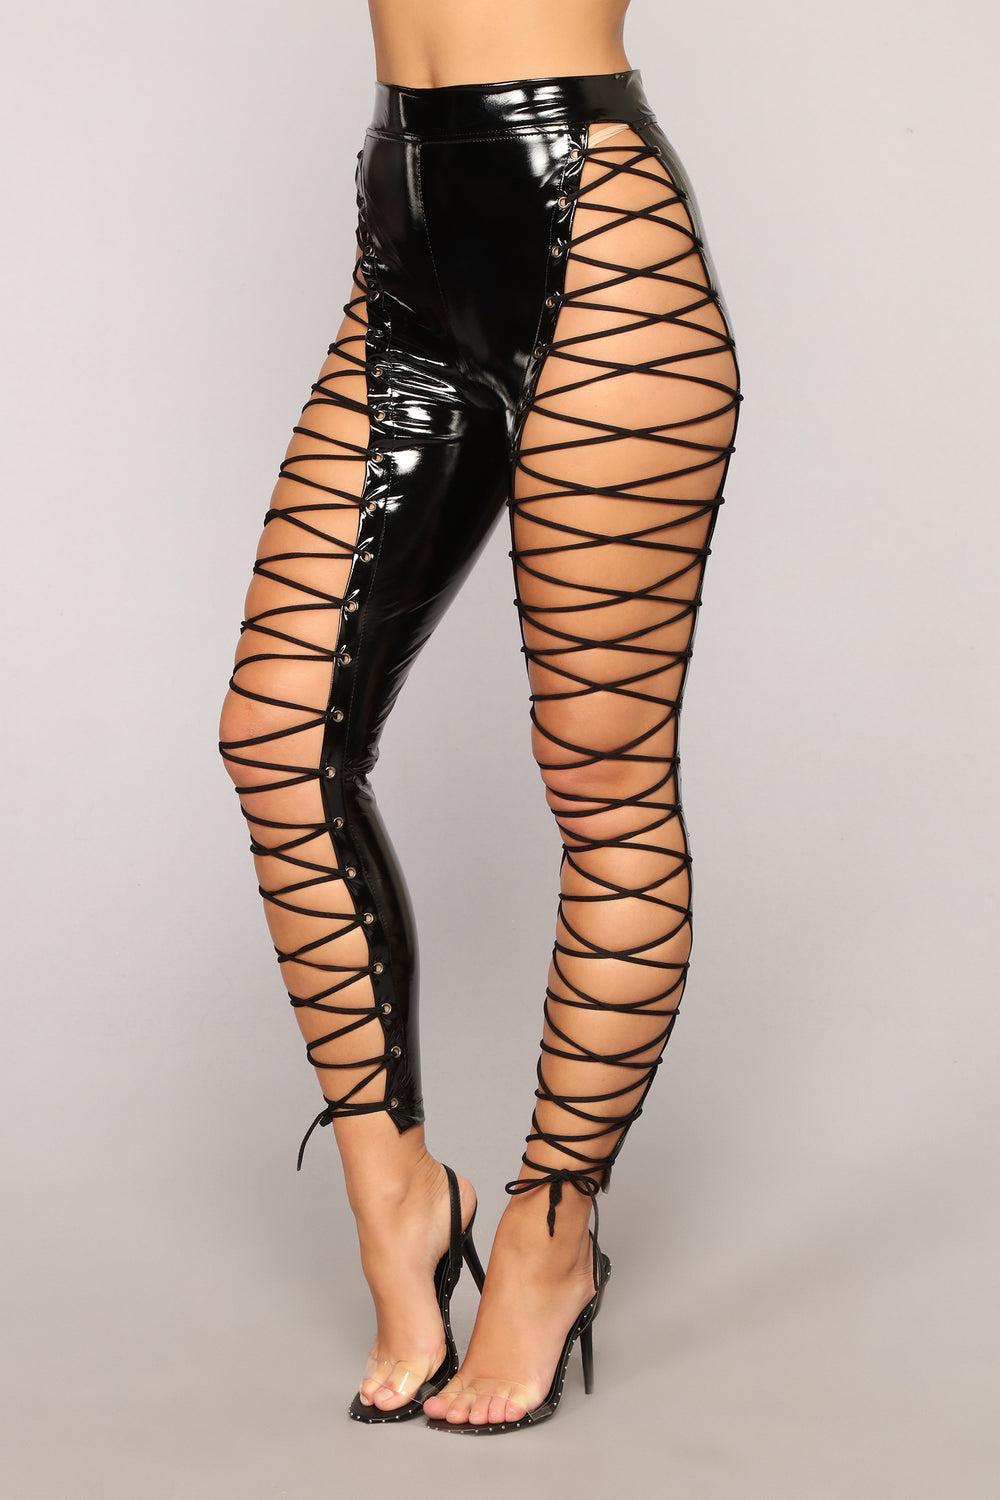 She's A Maneater Lace Up Pants - Black